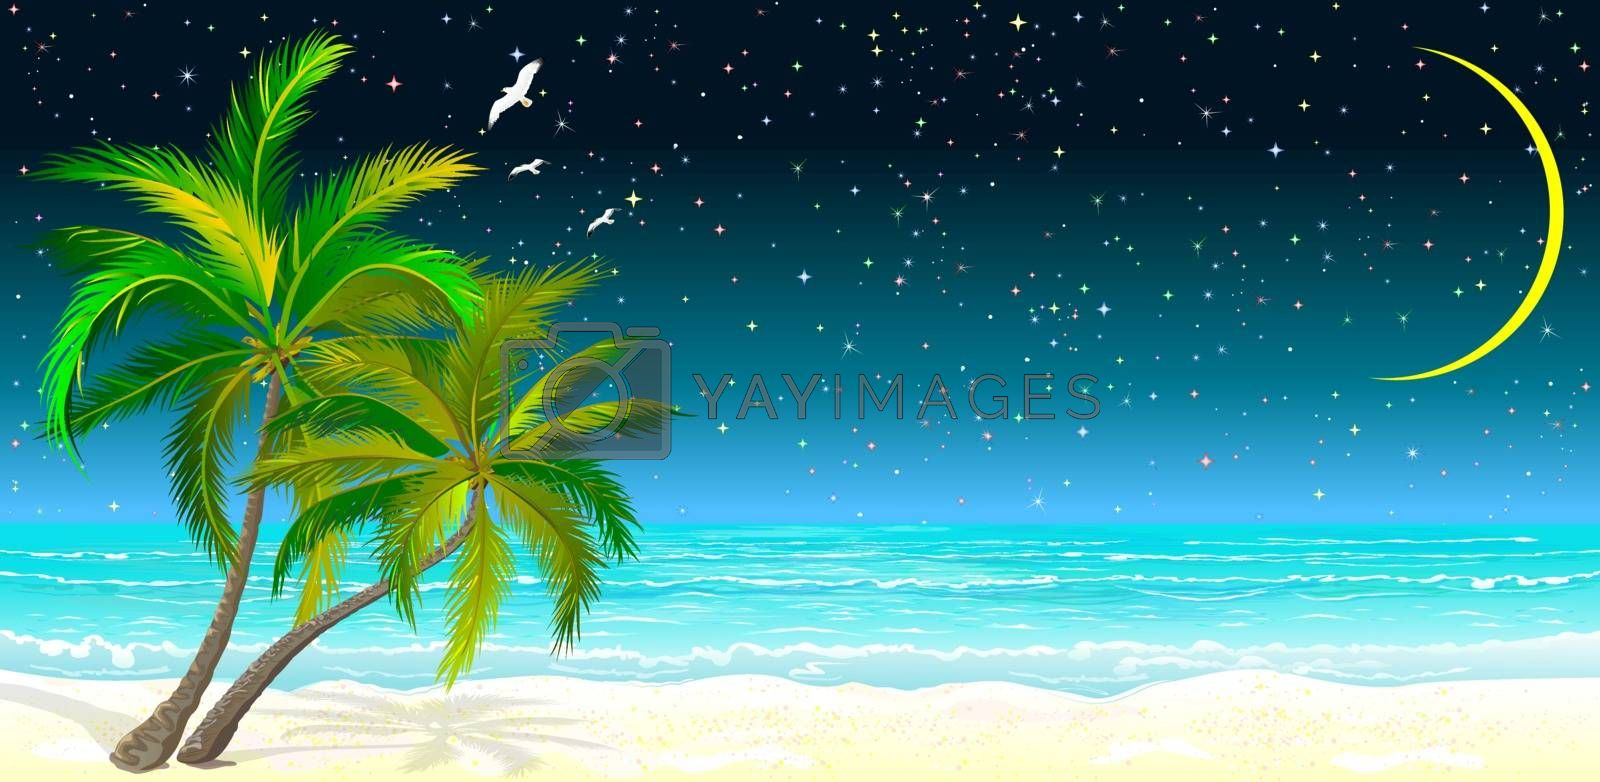 Tropical seascape. Palm trees on the sandy shore against the background of the sea and the night starry sky.